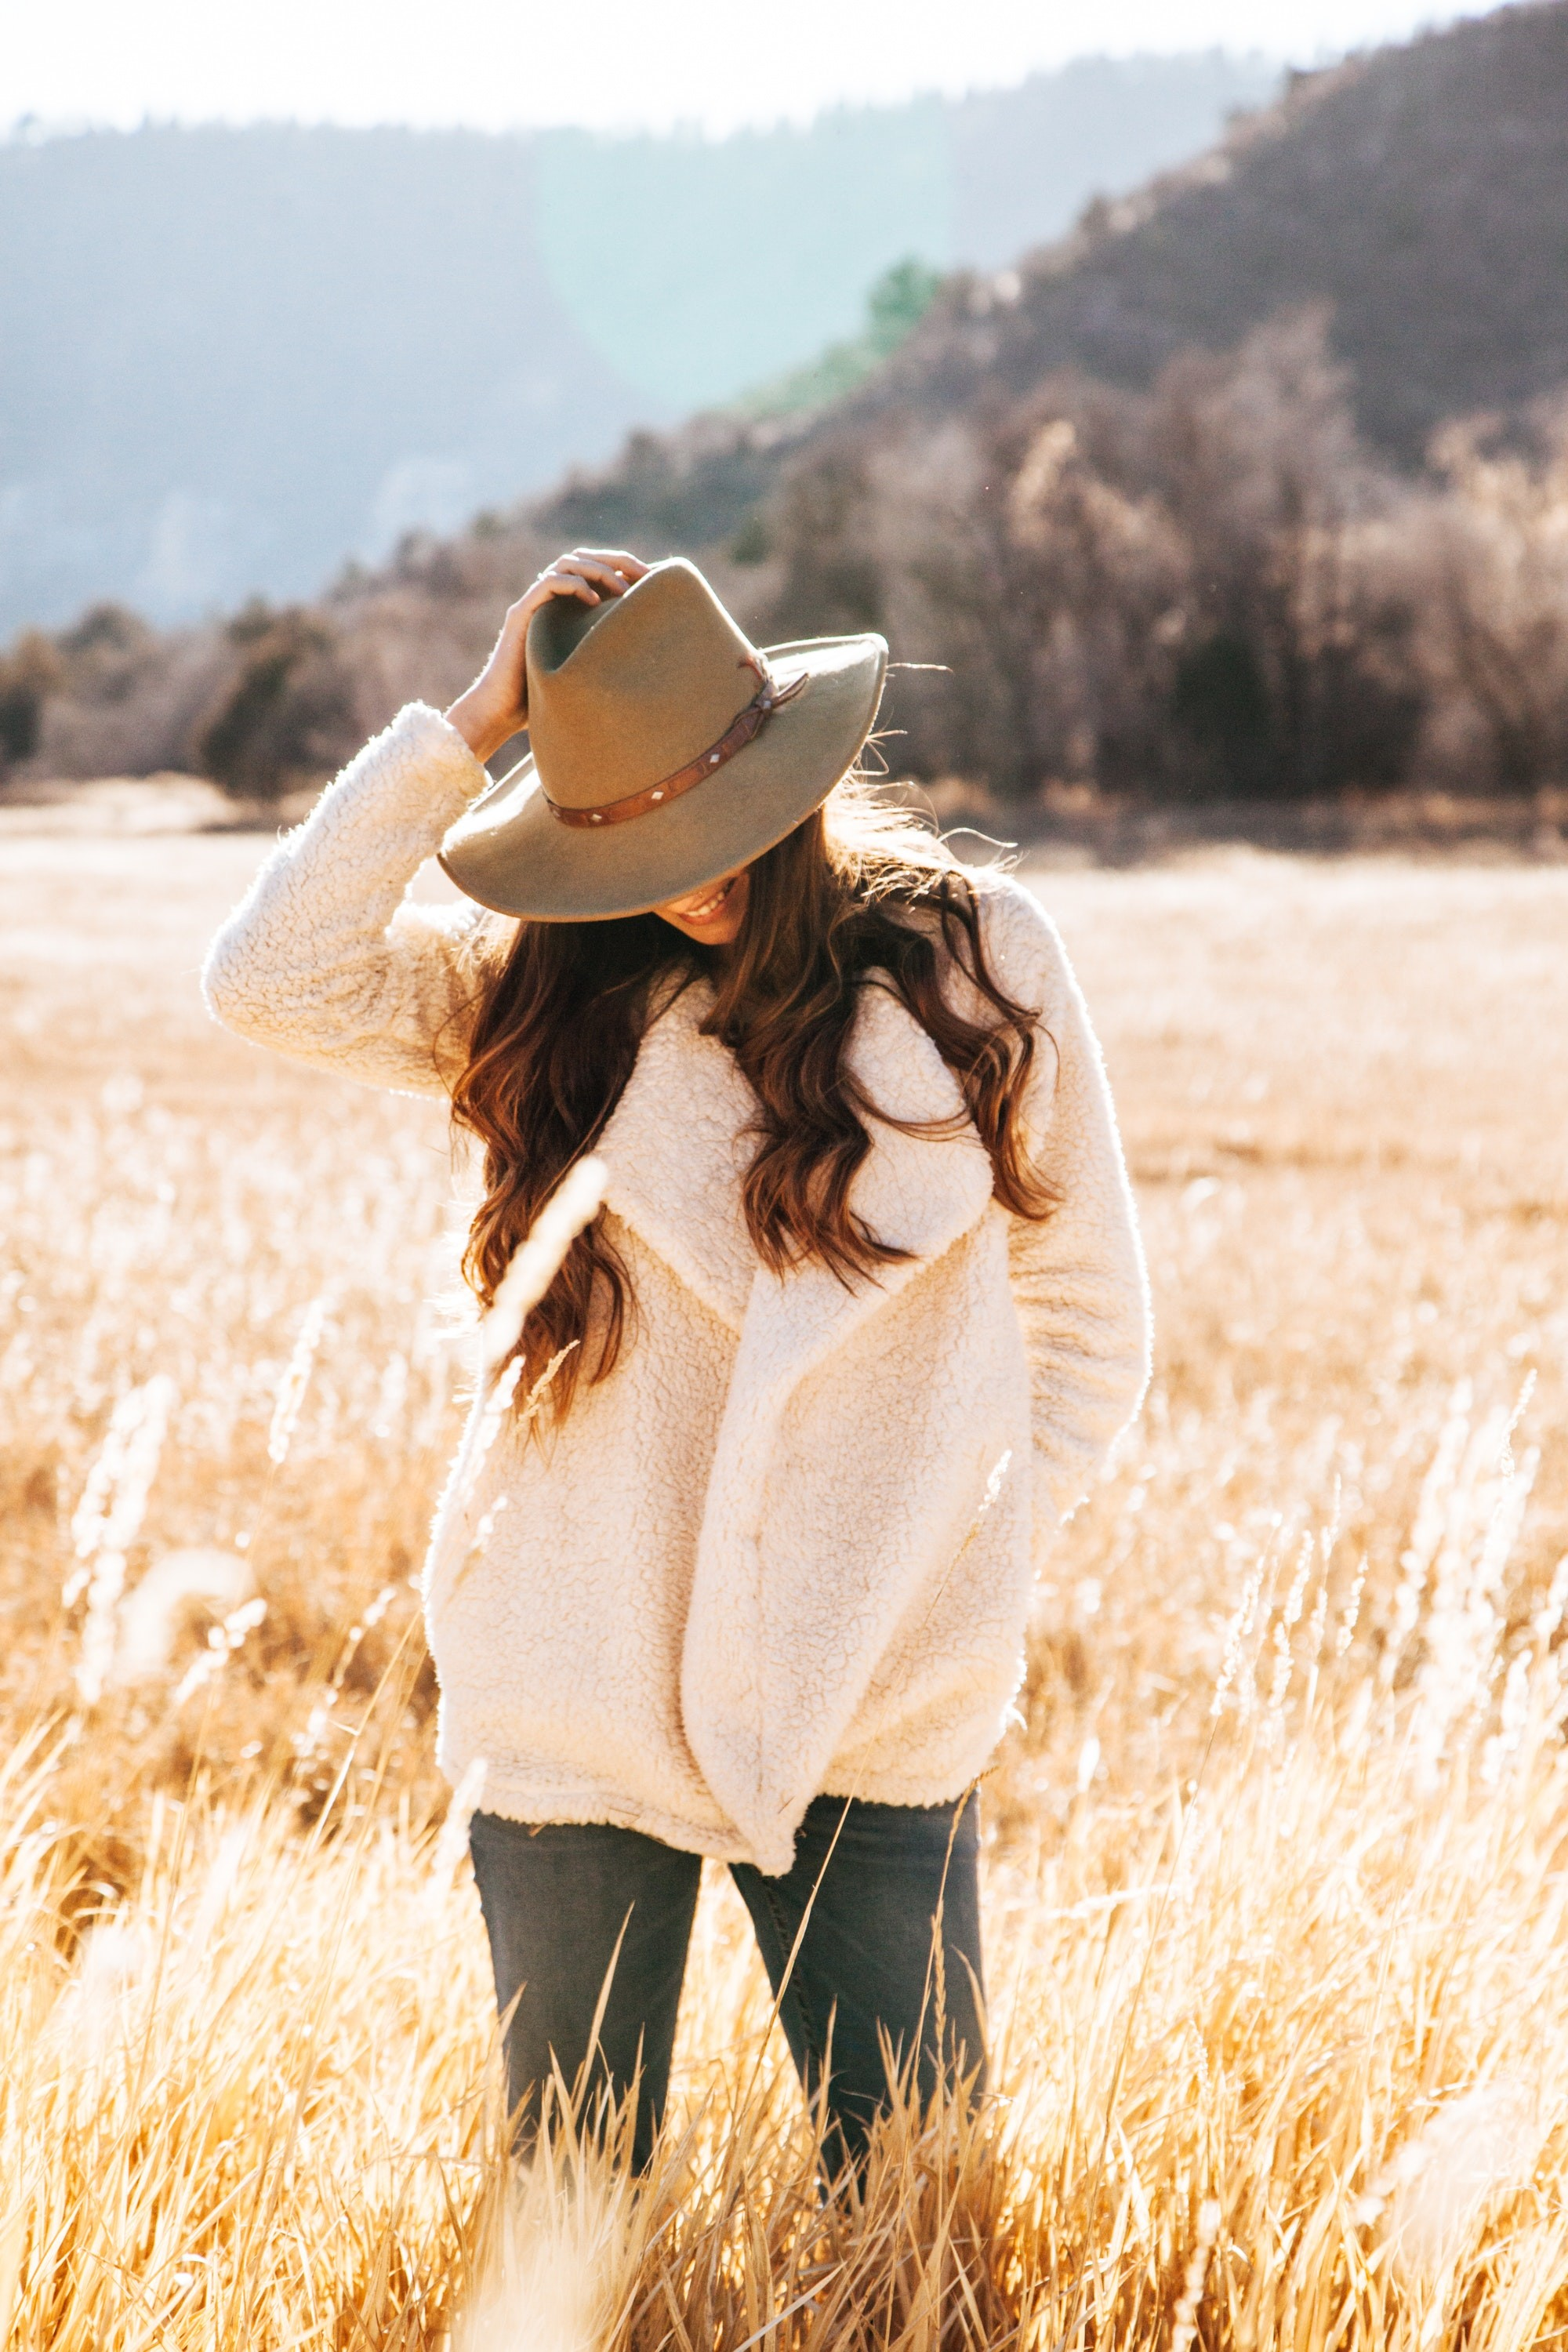 Res: 2000x3000, Smiling Woman in White Winter Jacket Wearing Brown Cowboy Hat Surrounded of  Brown Grass Field